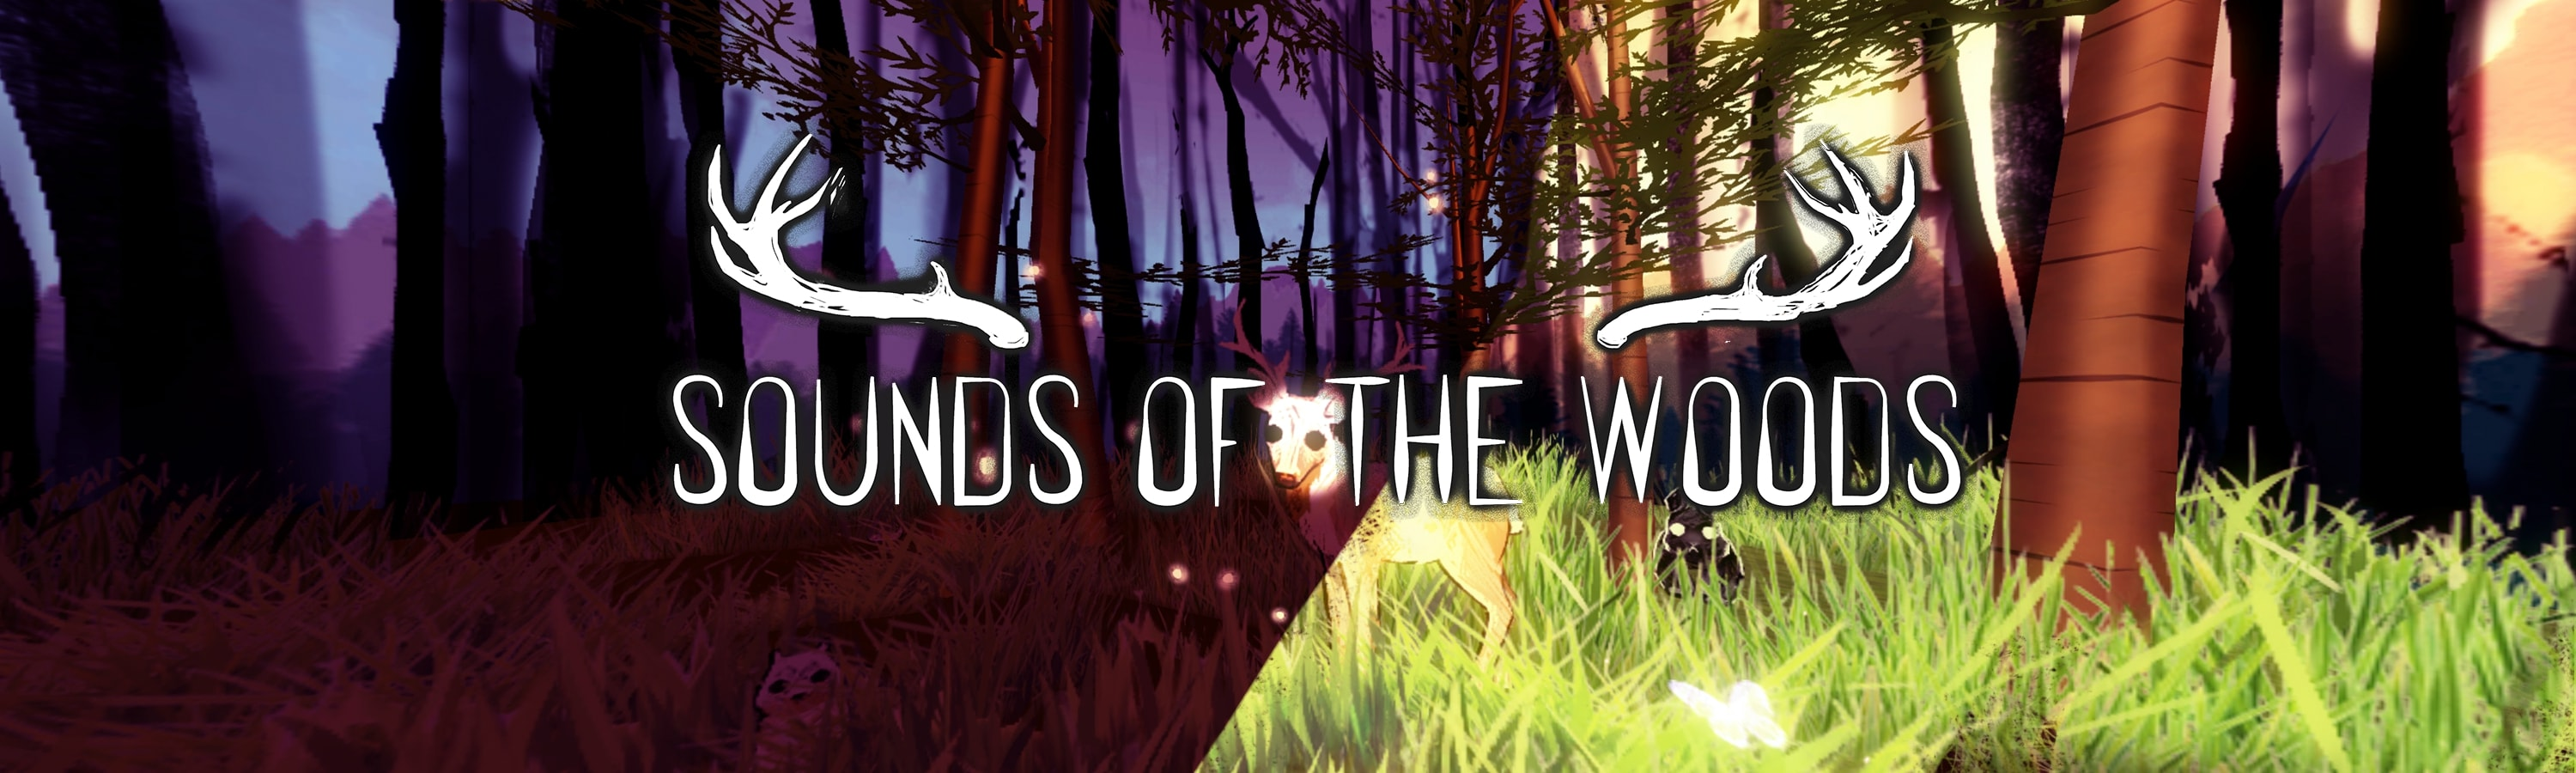 Sounds of the Woods | Kyle Qian